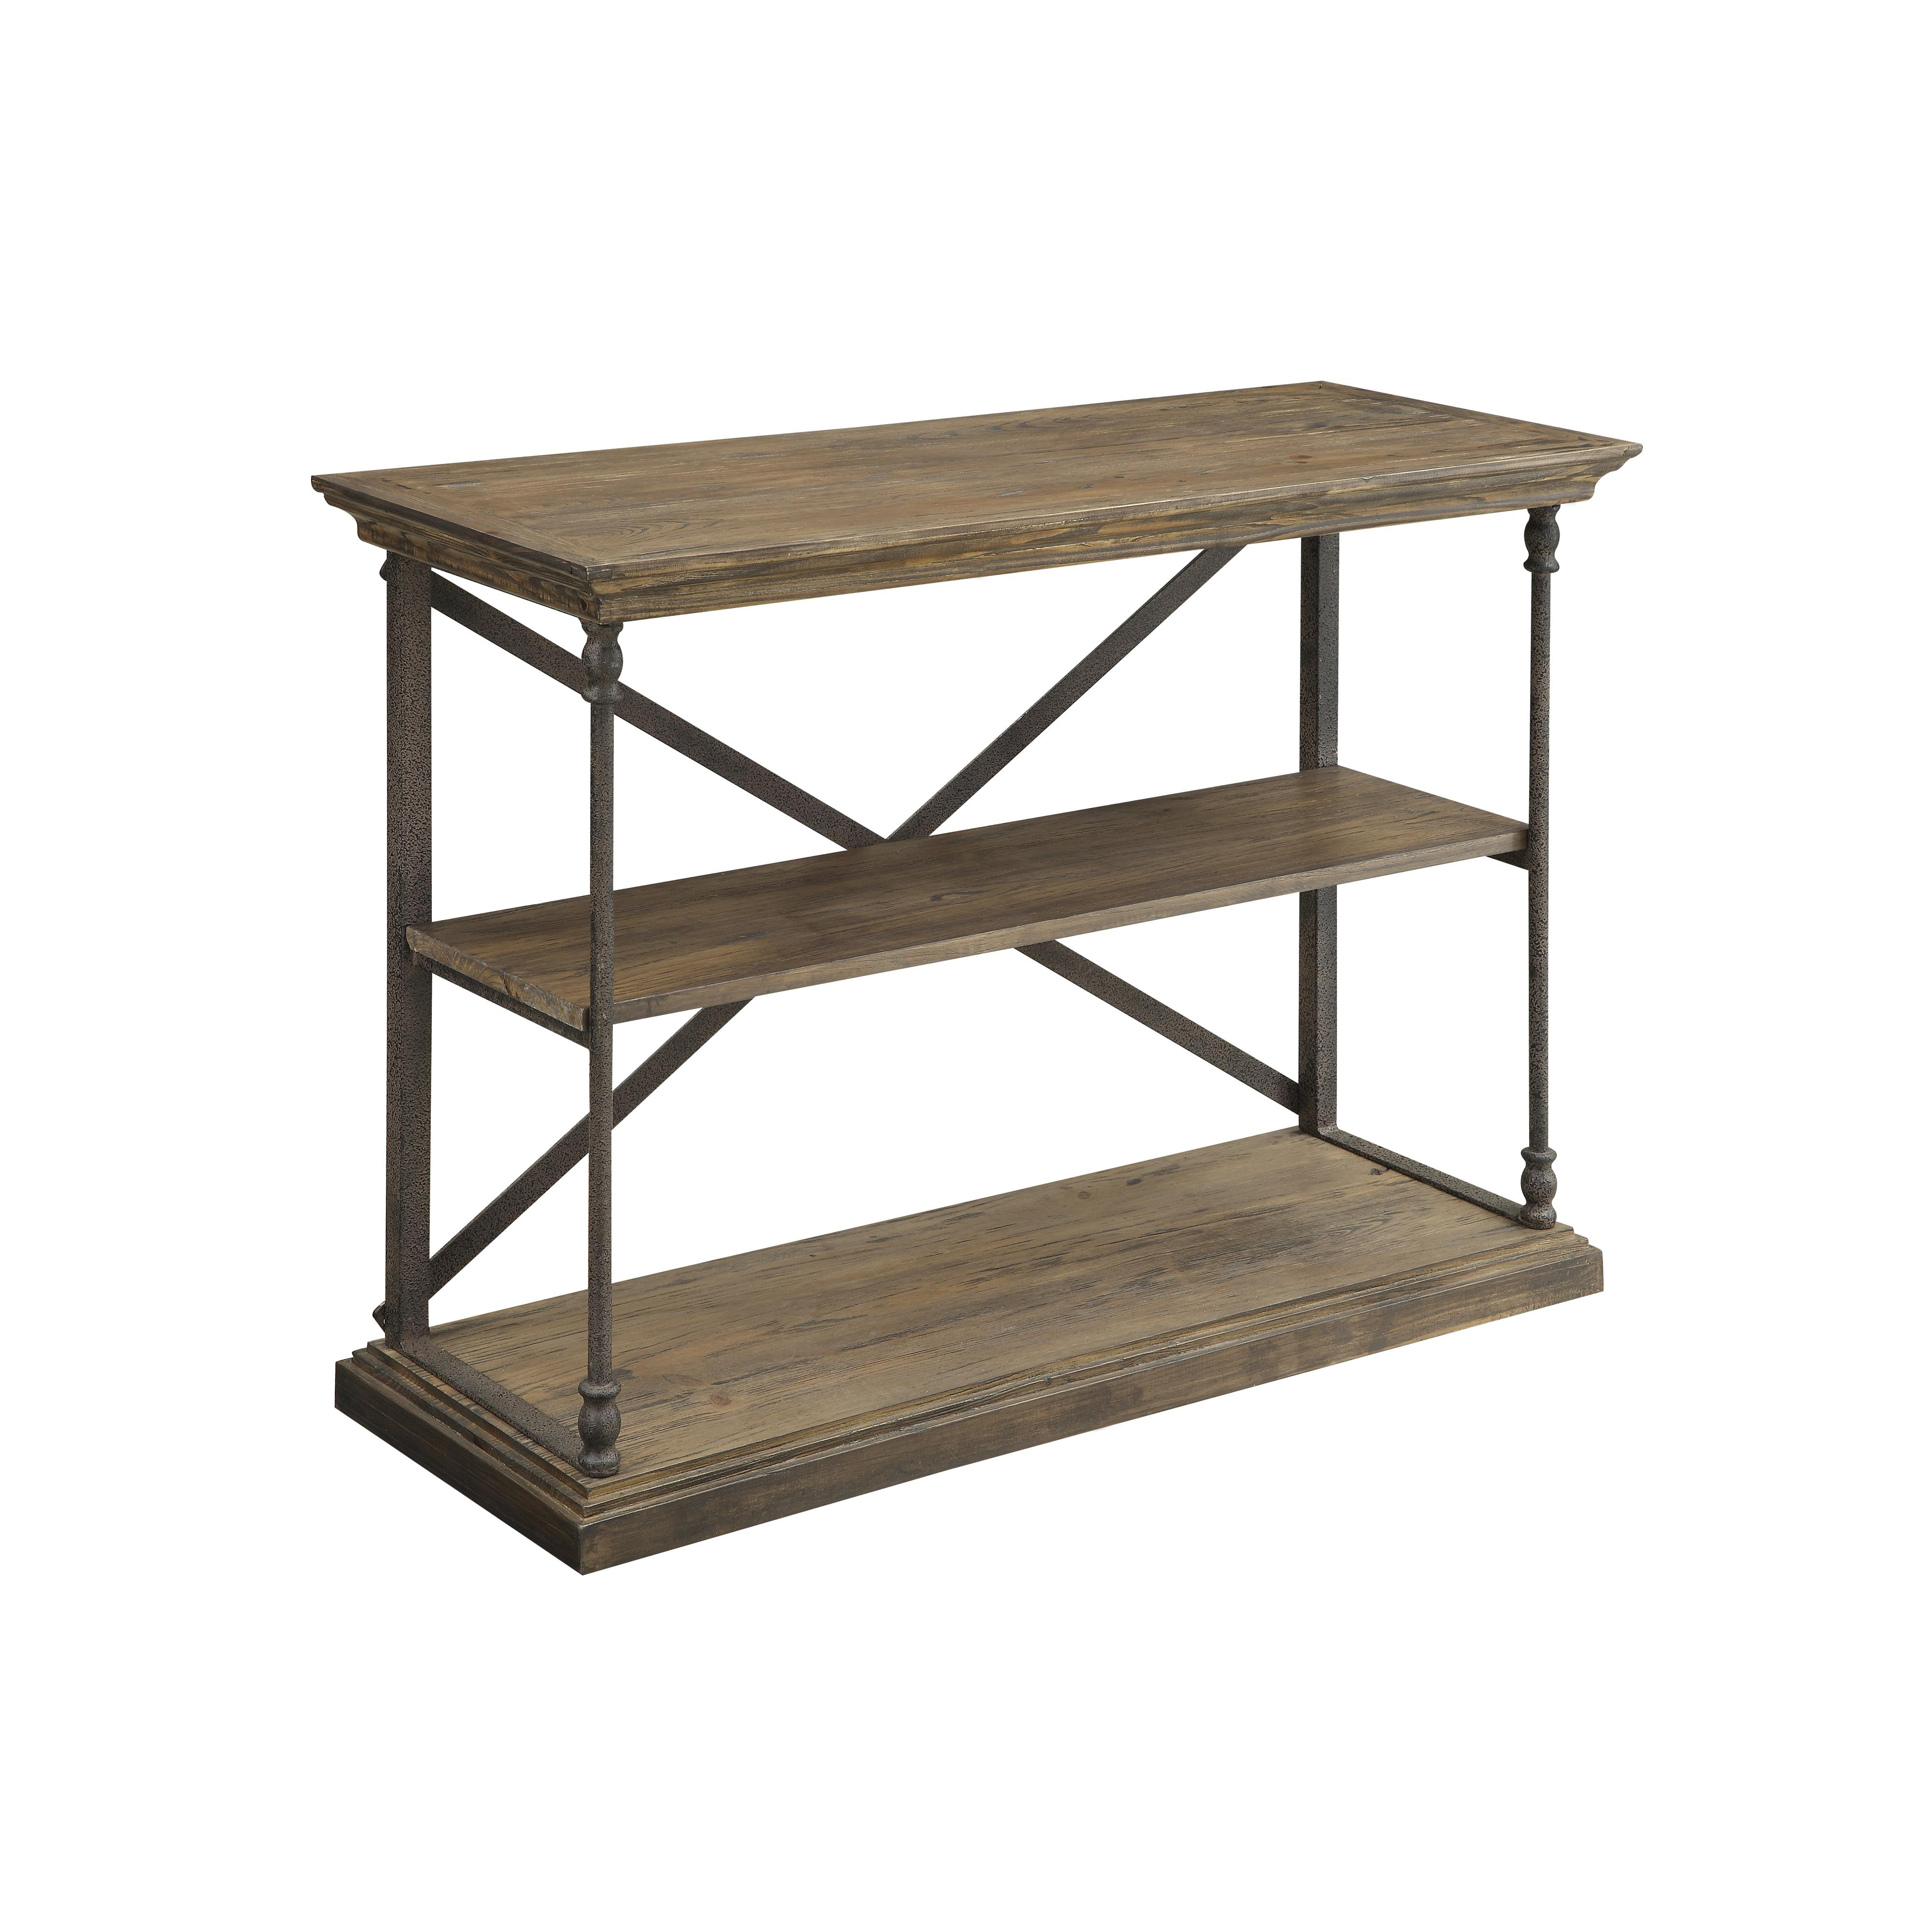 Coast to Coast Accents Console Table by Coast to Coast Imports at Baer's Furniture